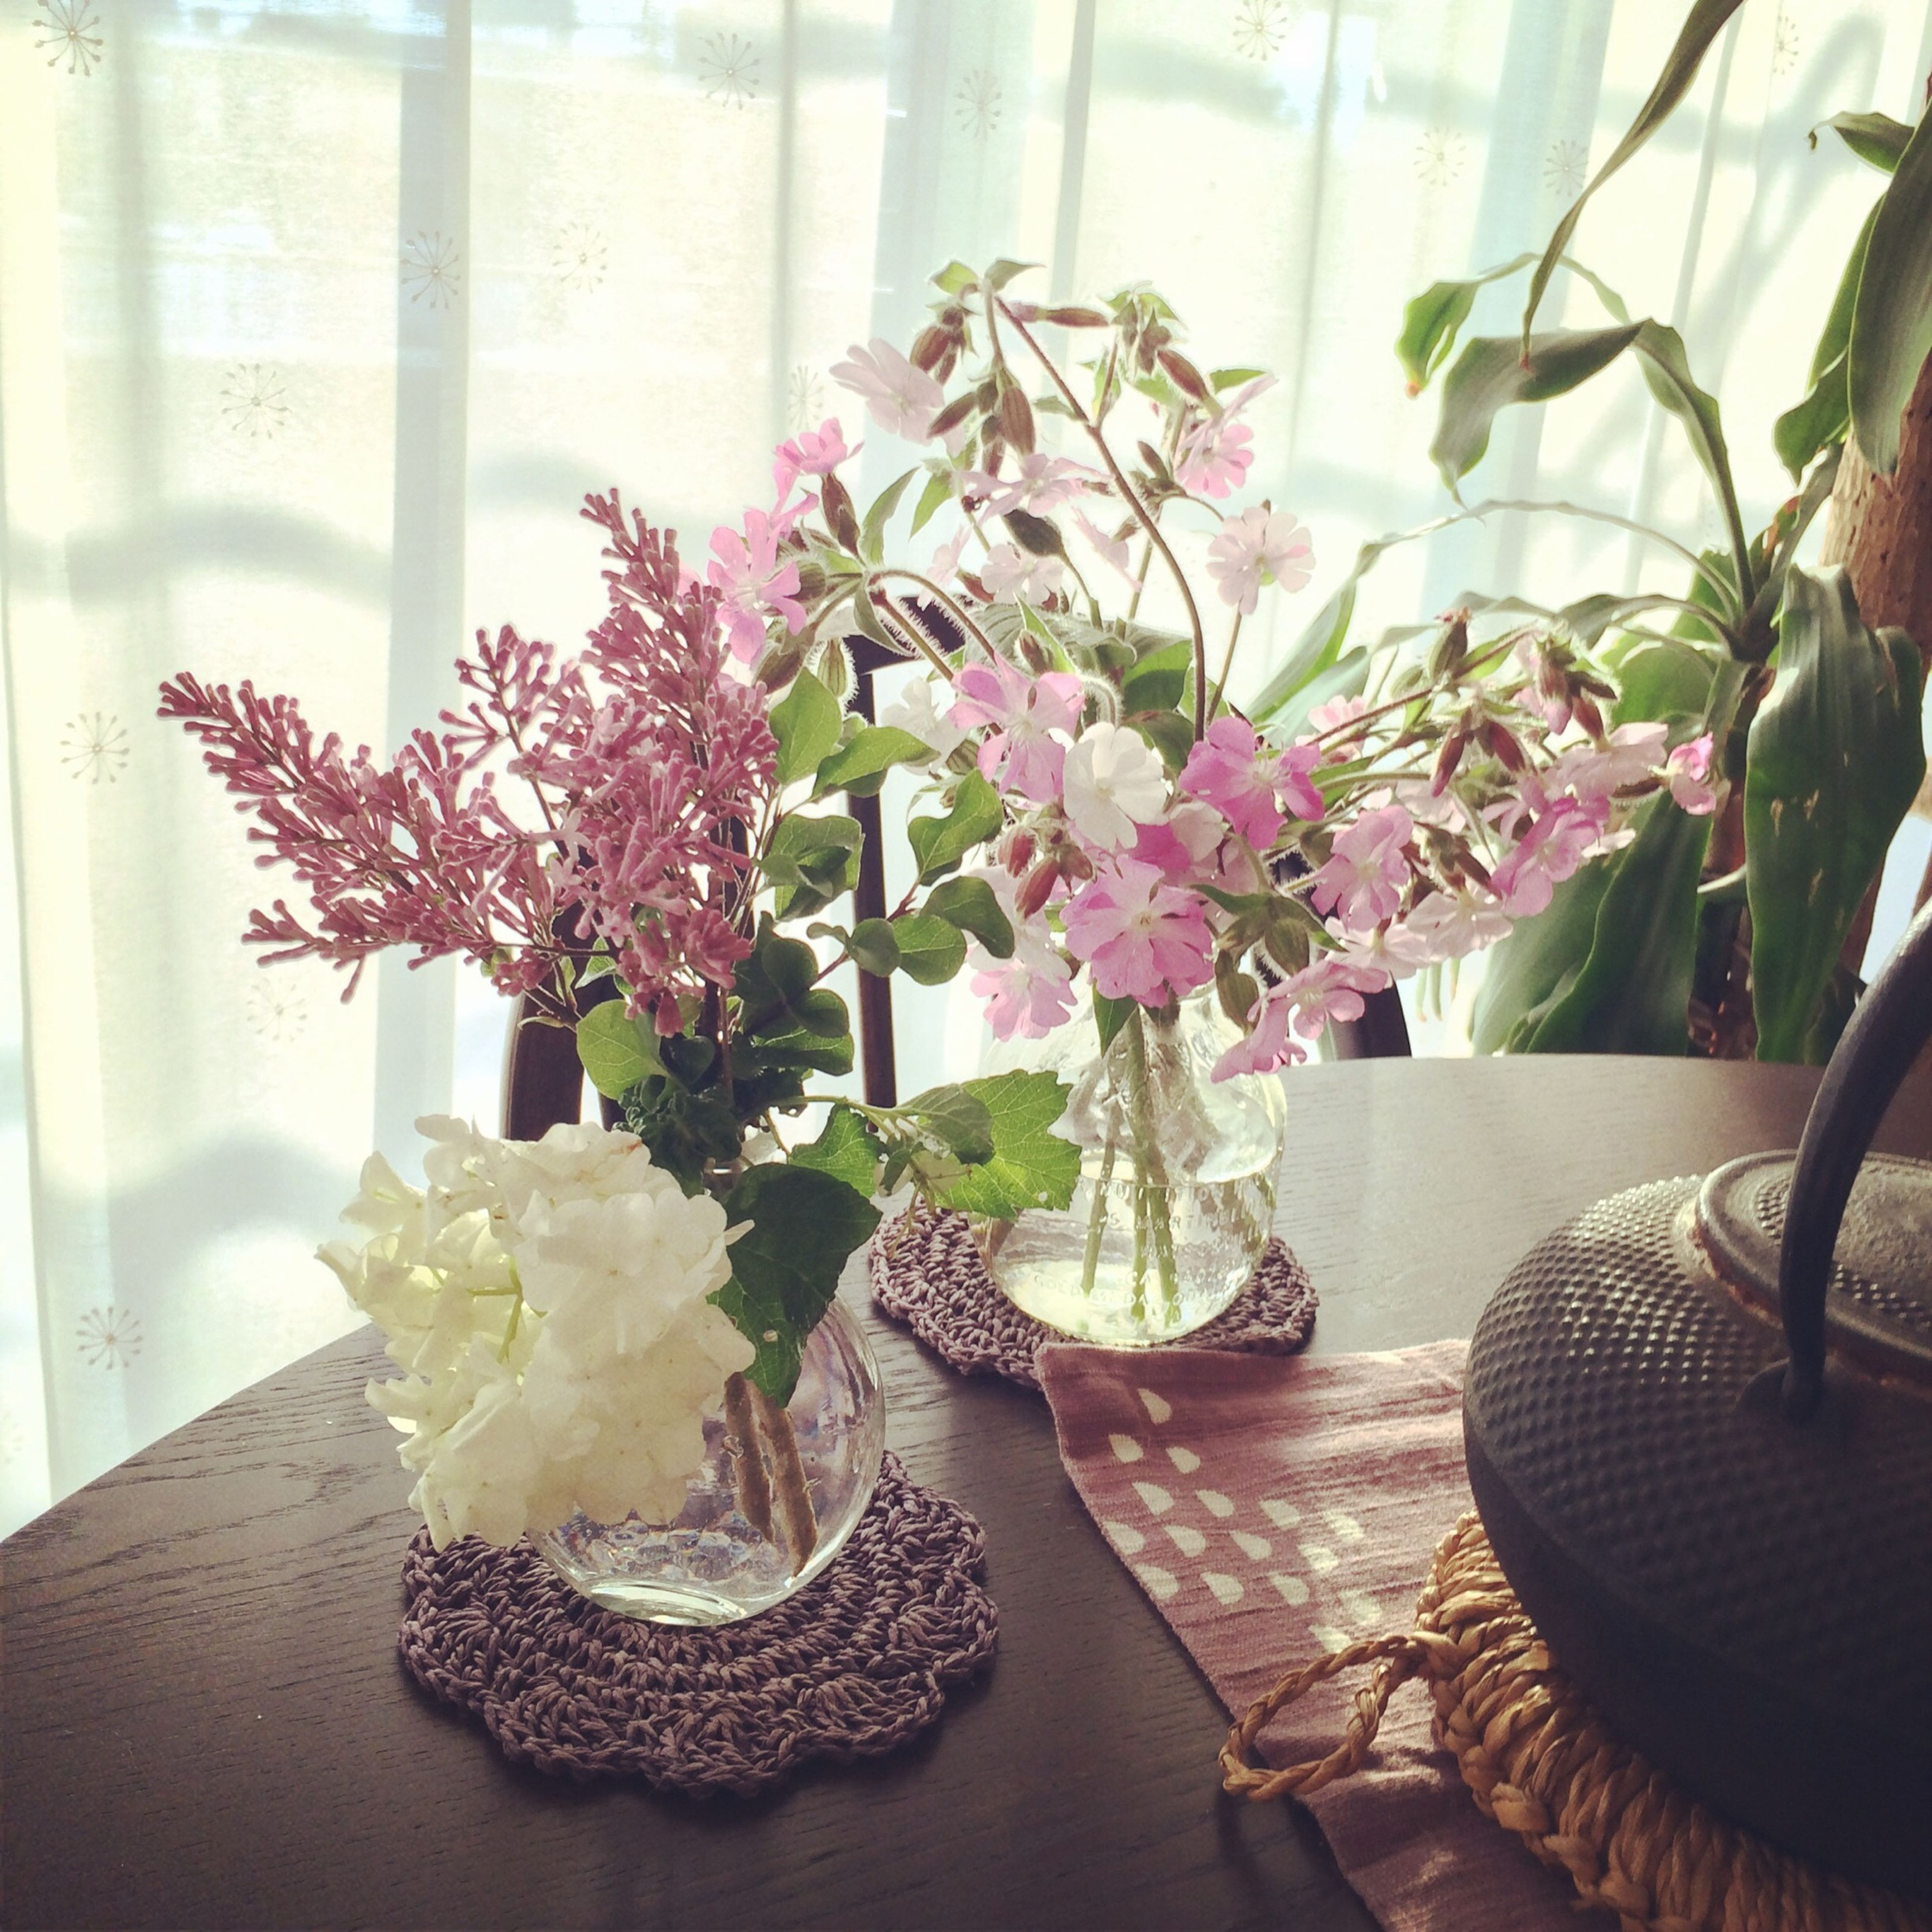 indoors, flower, potted plant, vase, table, home interior, freshness, fragility, chair, plant, window, growth, flower pot, flower arrangement, house, no people, high angle view, petal, nature, decoration